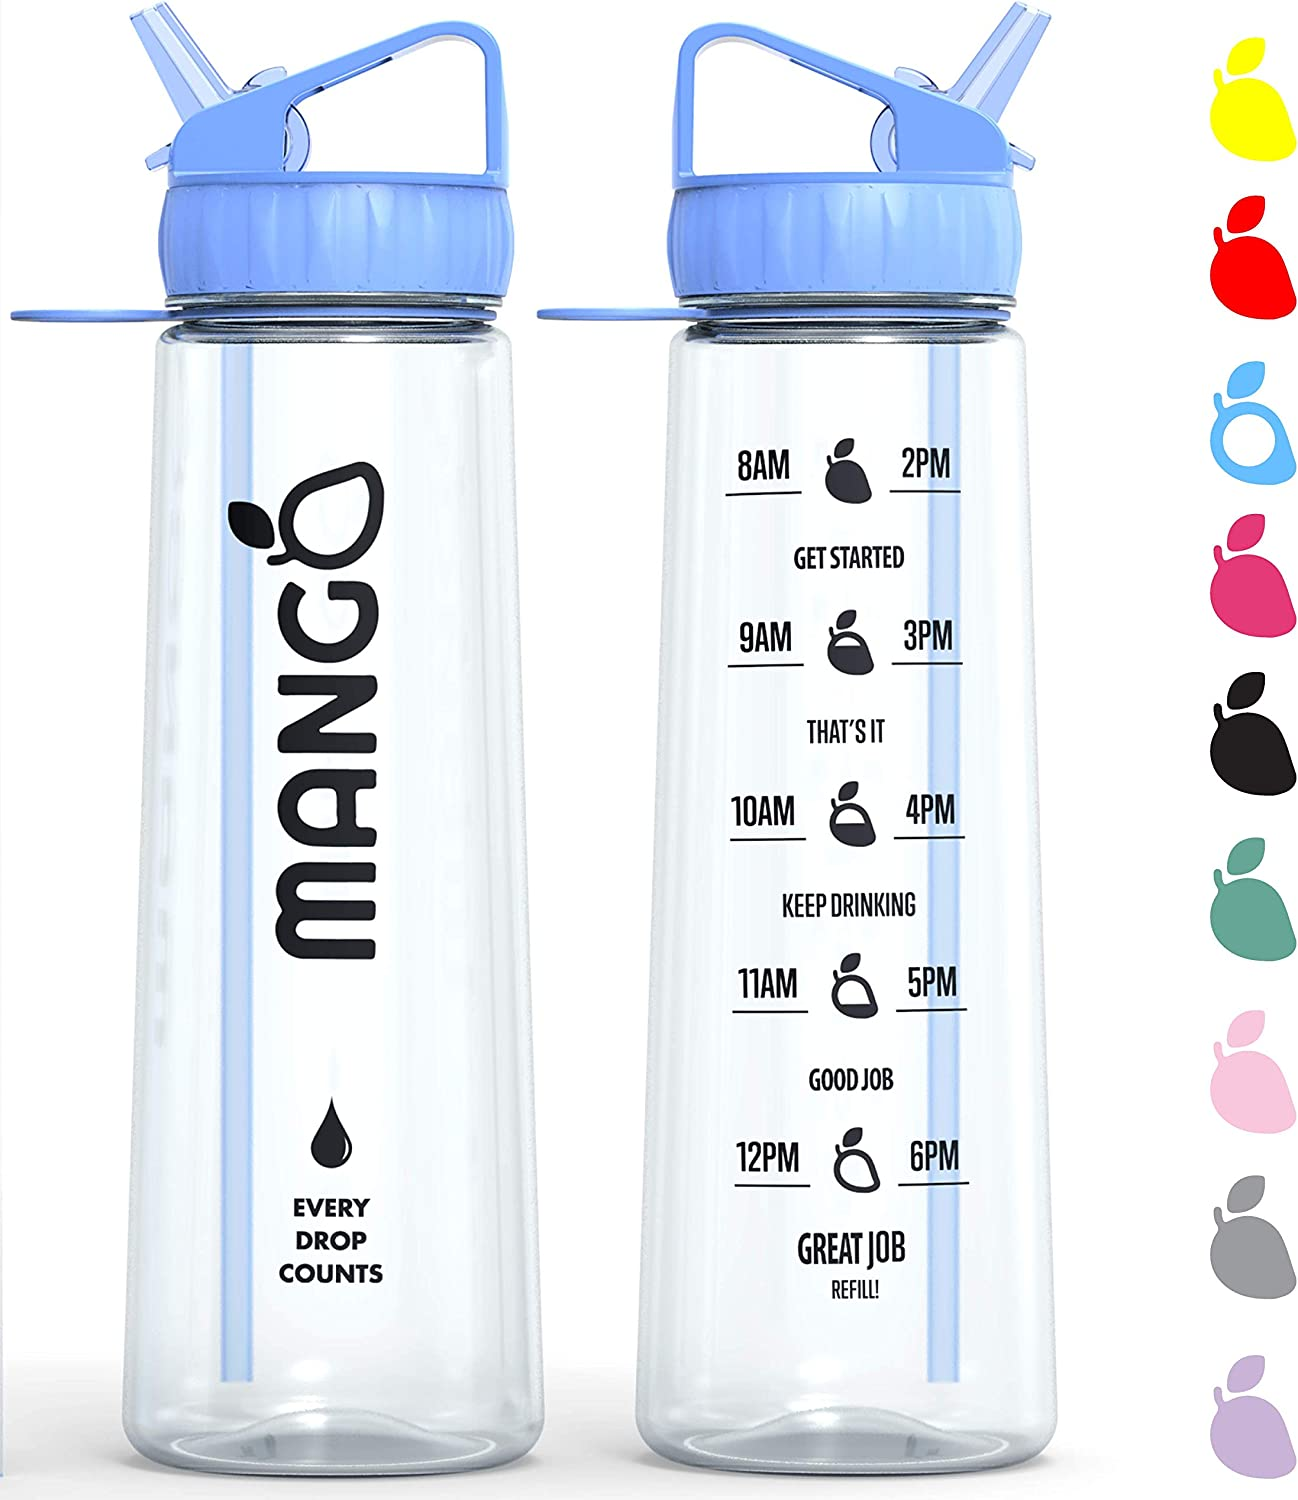 Mango Water Bottle With Straw - Motivational Time Markings - BPA Free  Sports Bottles With Flip Nozzle And Leakproof Cap: Amazon.co.uk: Sports &  Outdoors